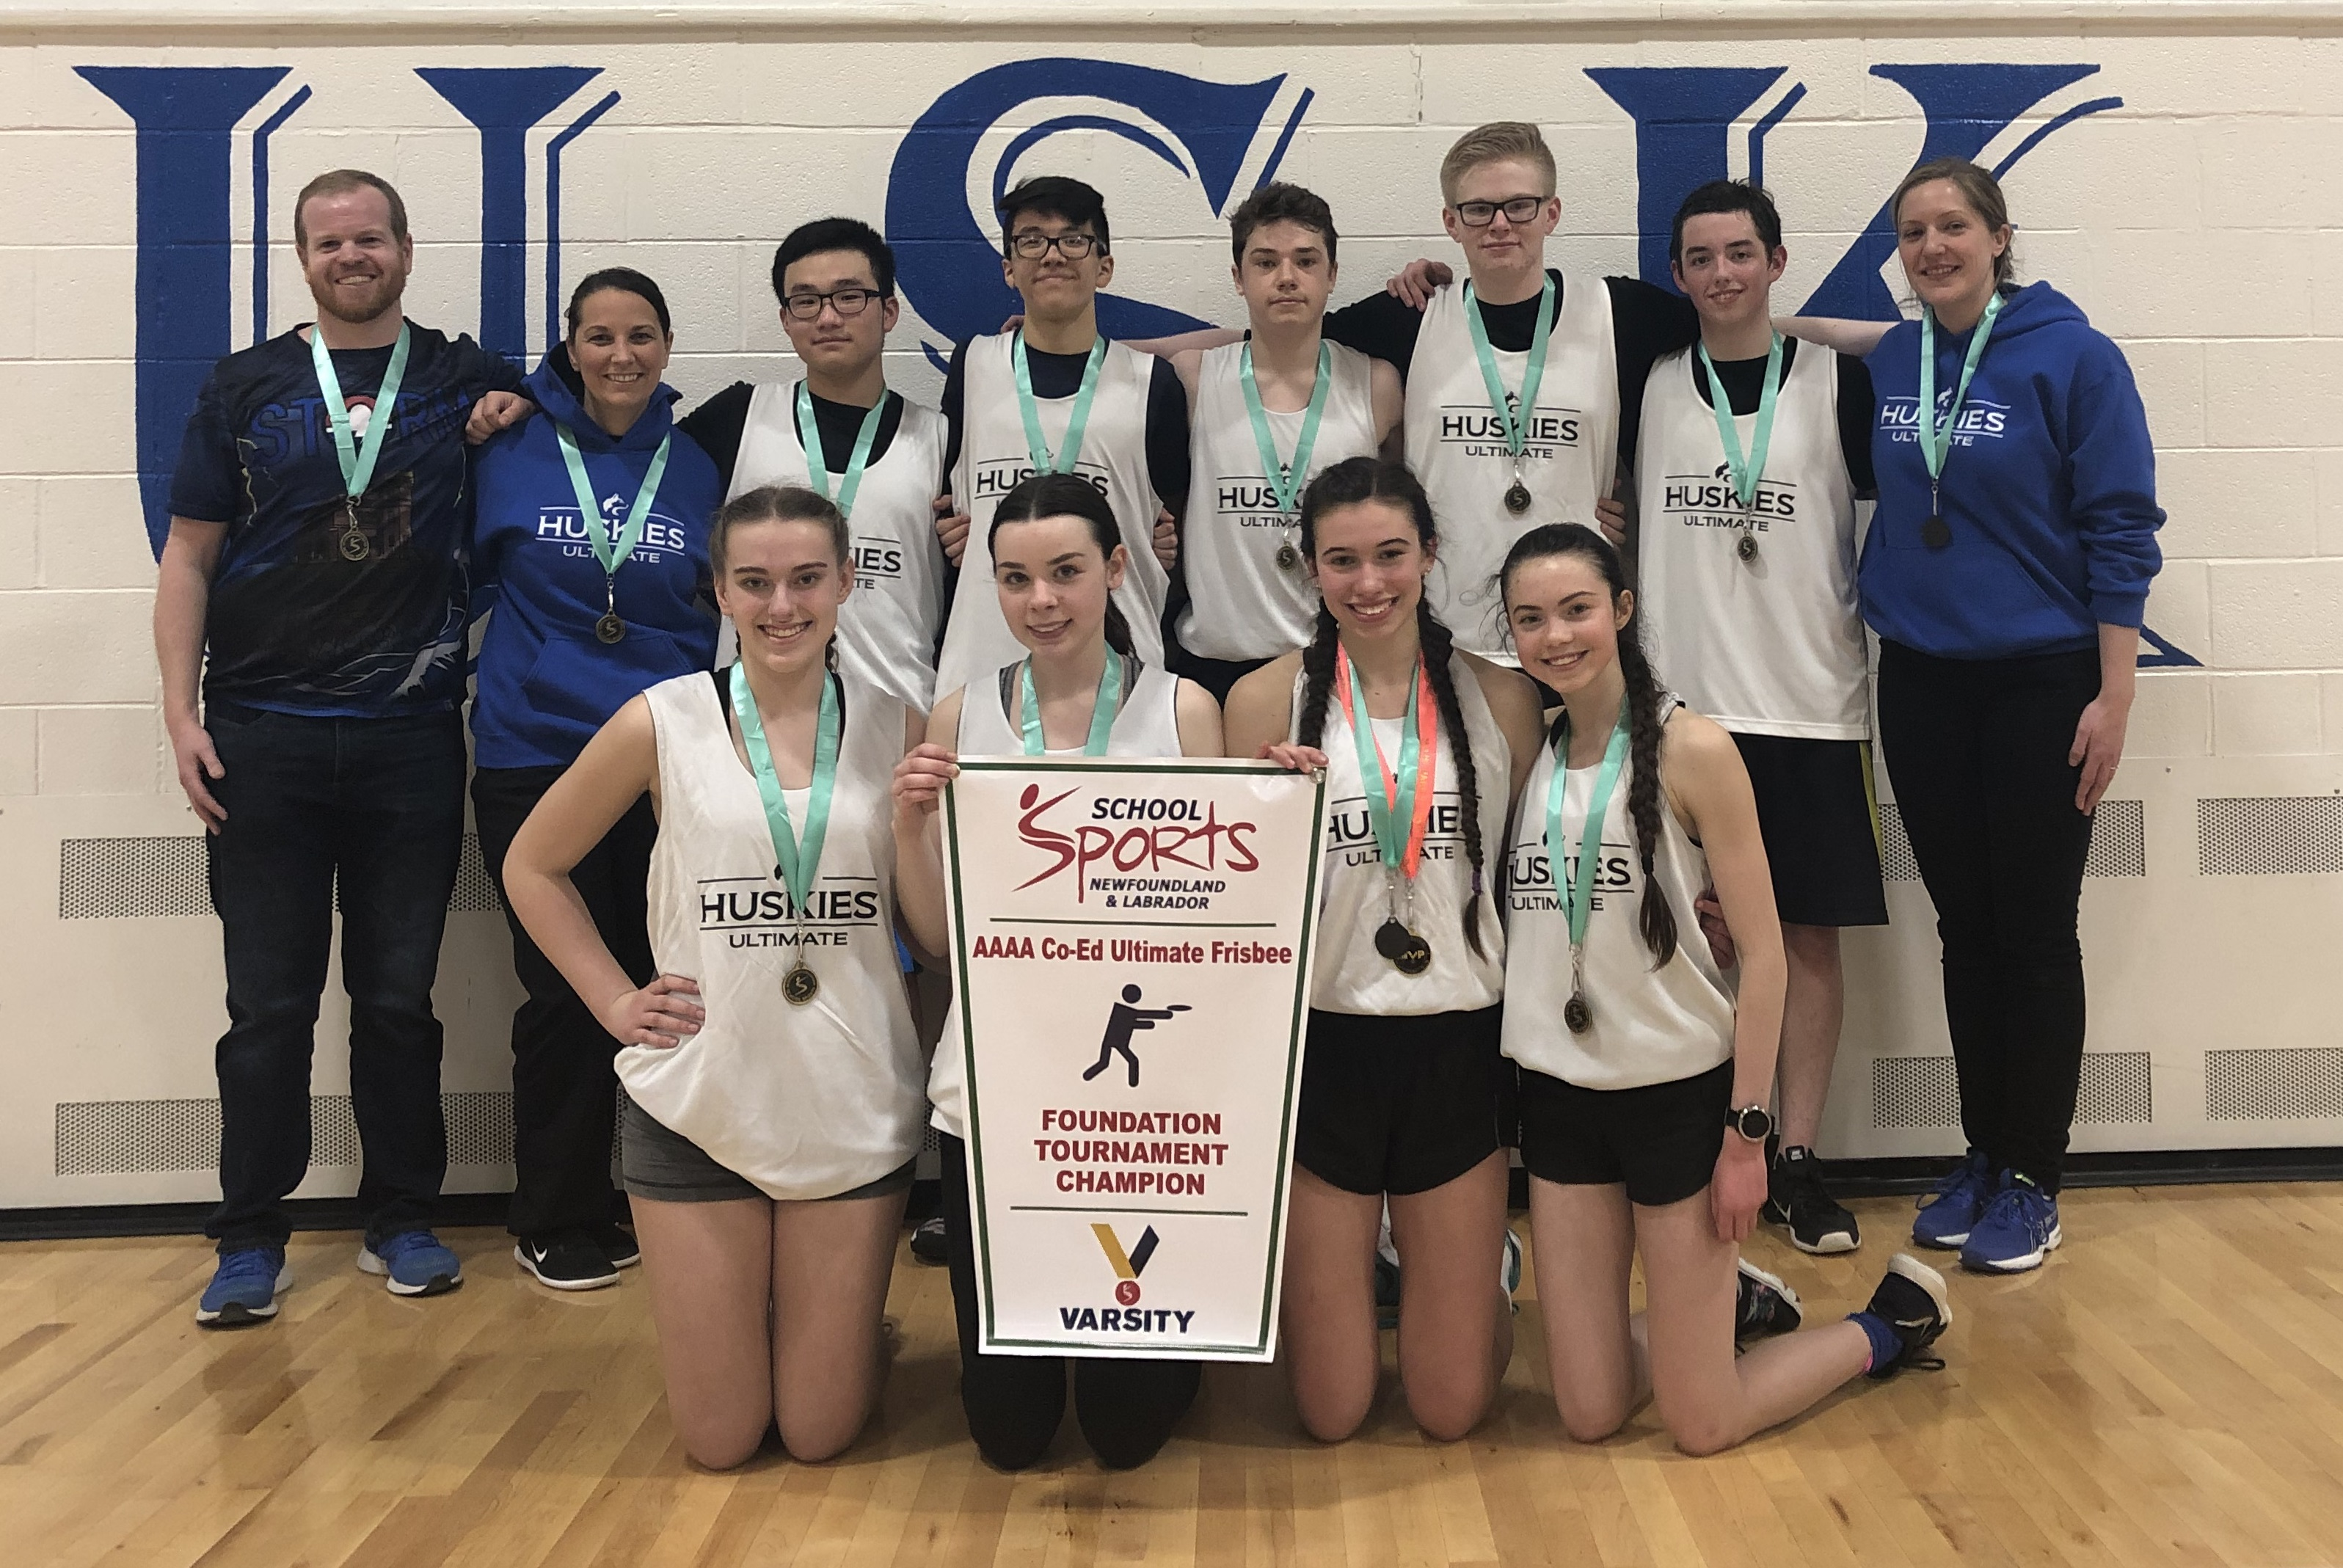 Mount Pearl Senior High, pictured with coaches Aaron Power, Natalie O'Donnell and Claire Moore-Gibbons, won the first banner for ultimate frisbee from School Sports NL.